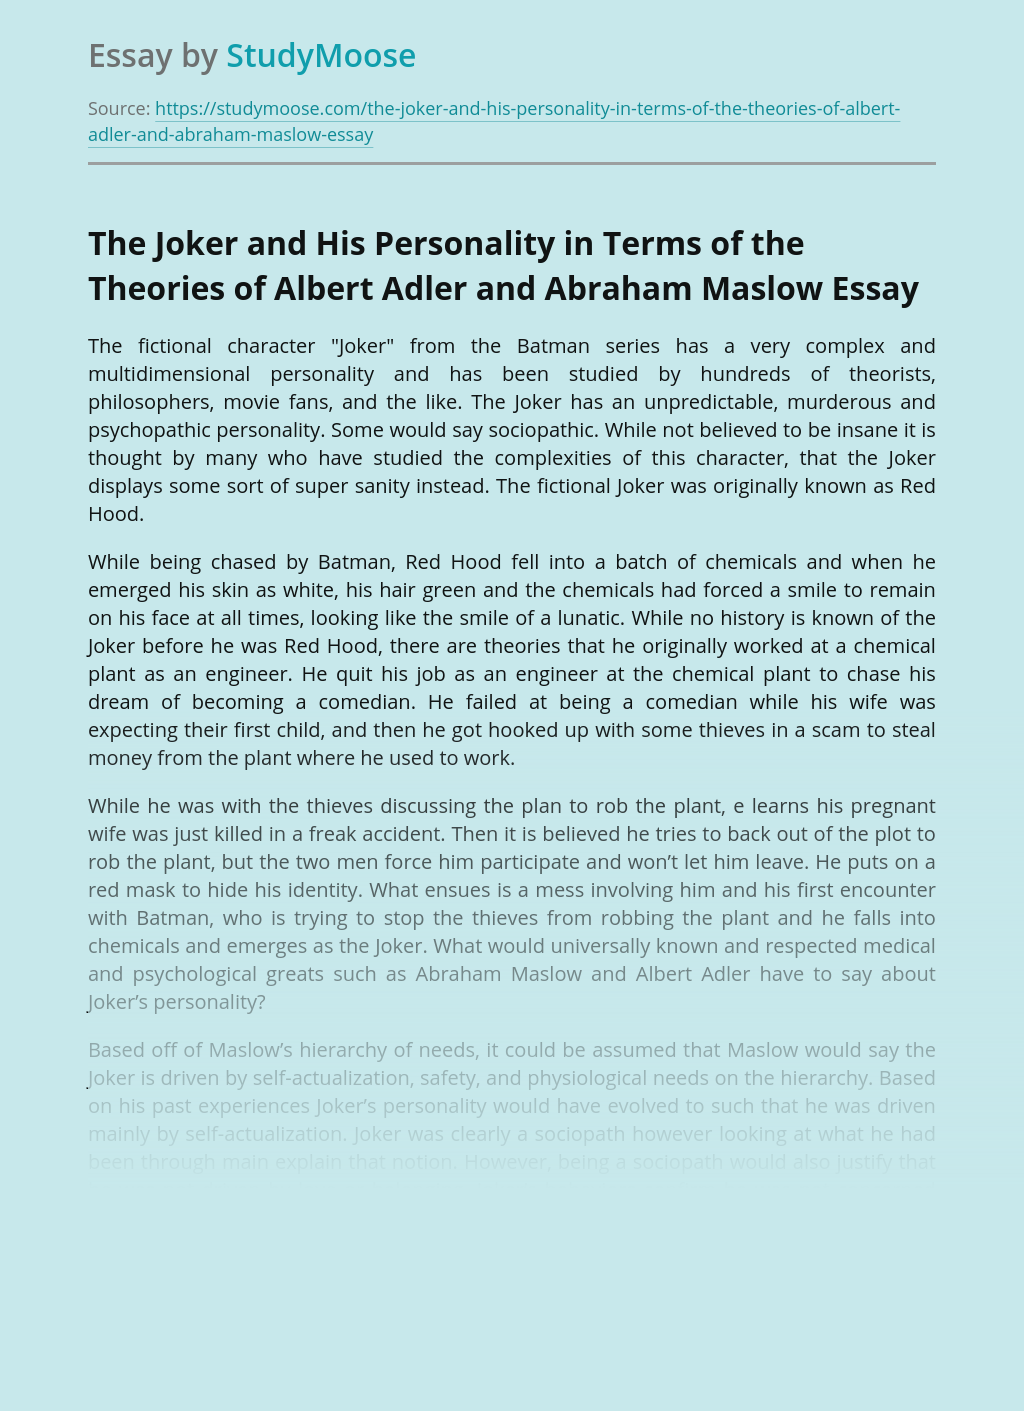 The Joker and His Personality in Terms of the Theories of Albert Adler and Abraham Maslow